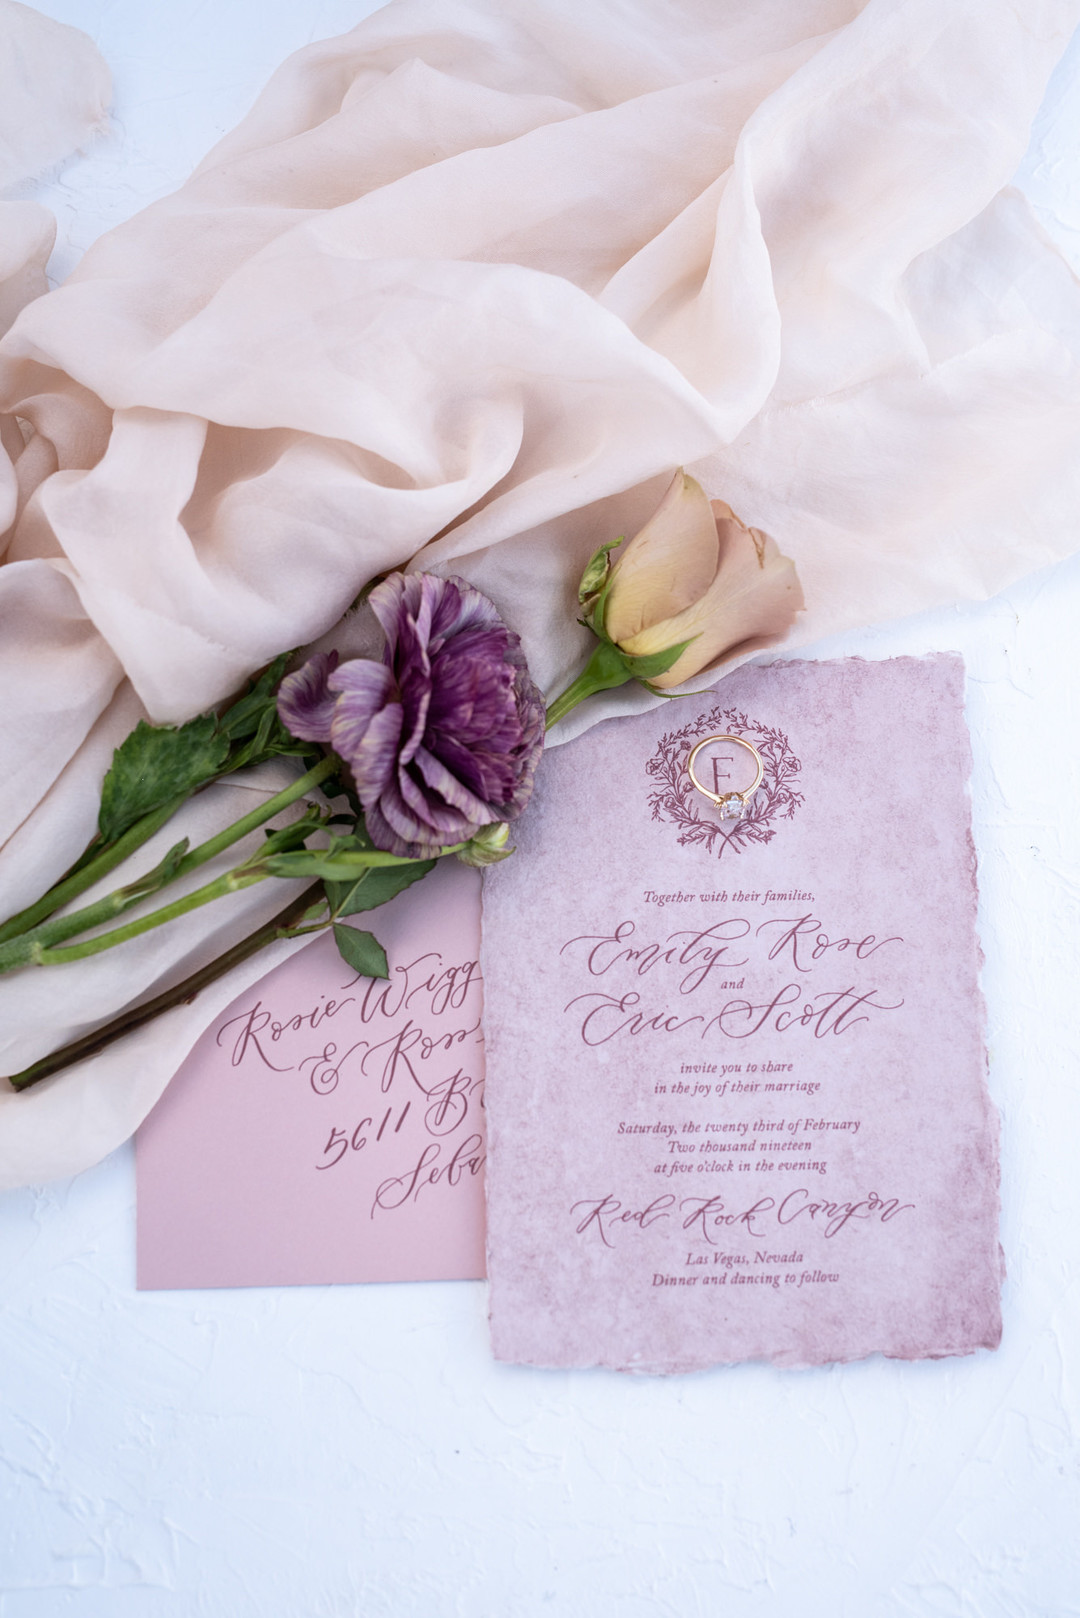 Calligraphy invitation on purple parchment paper